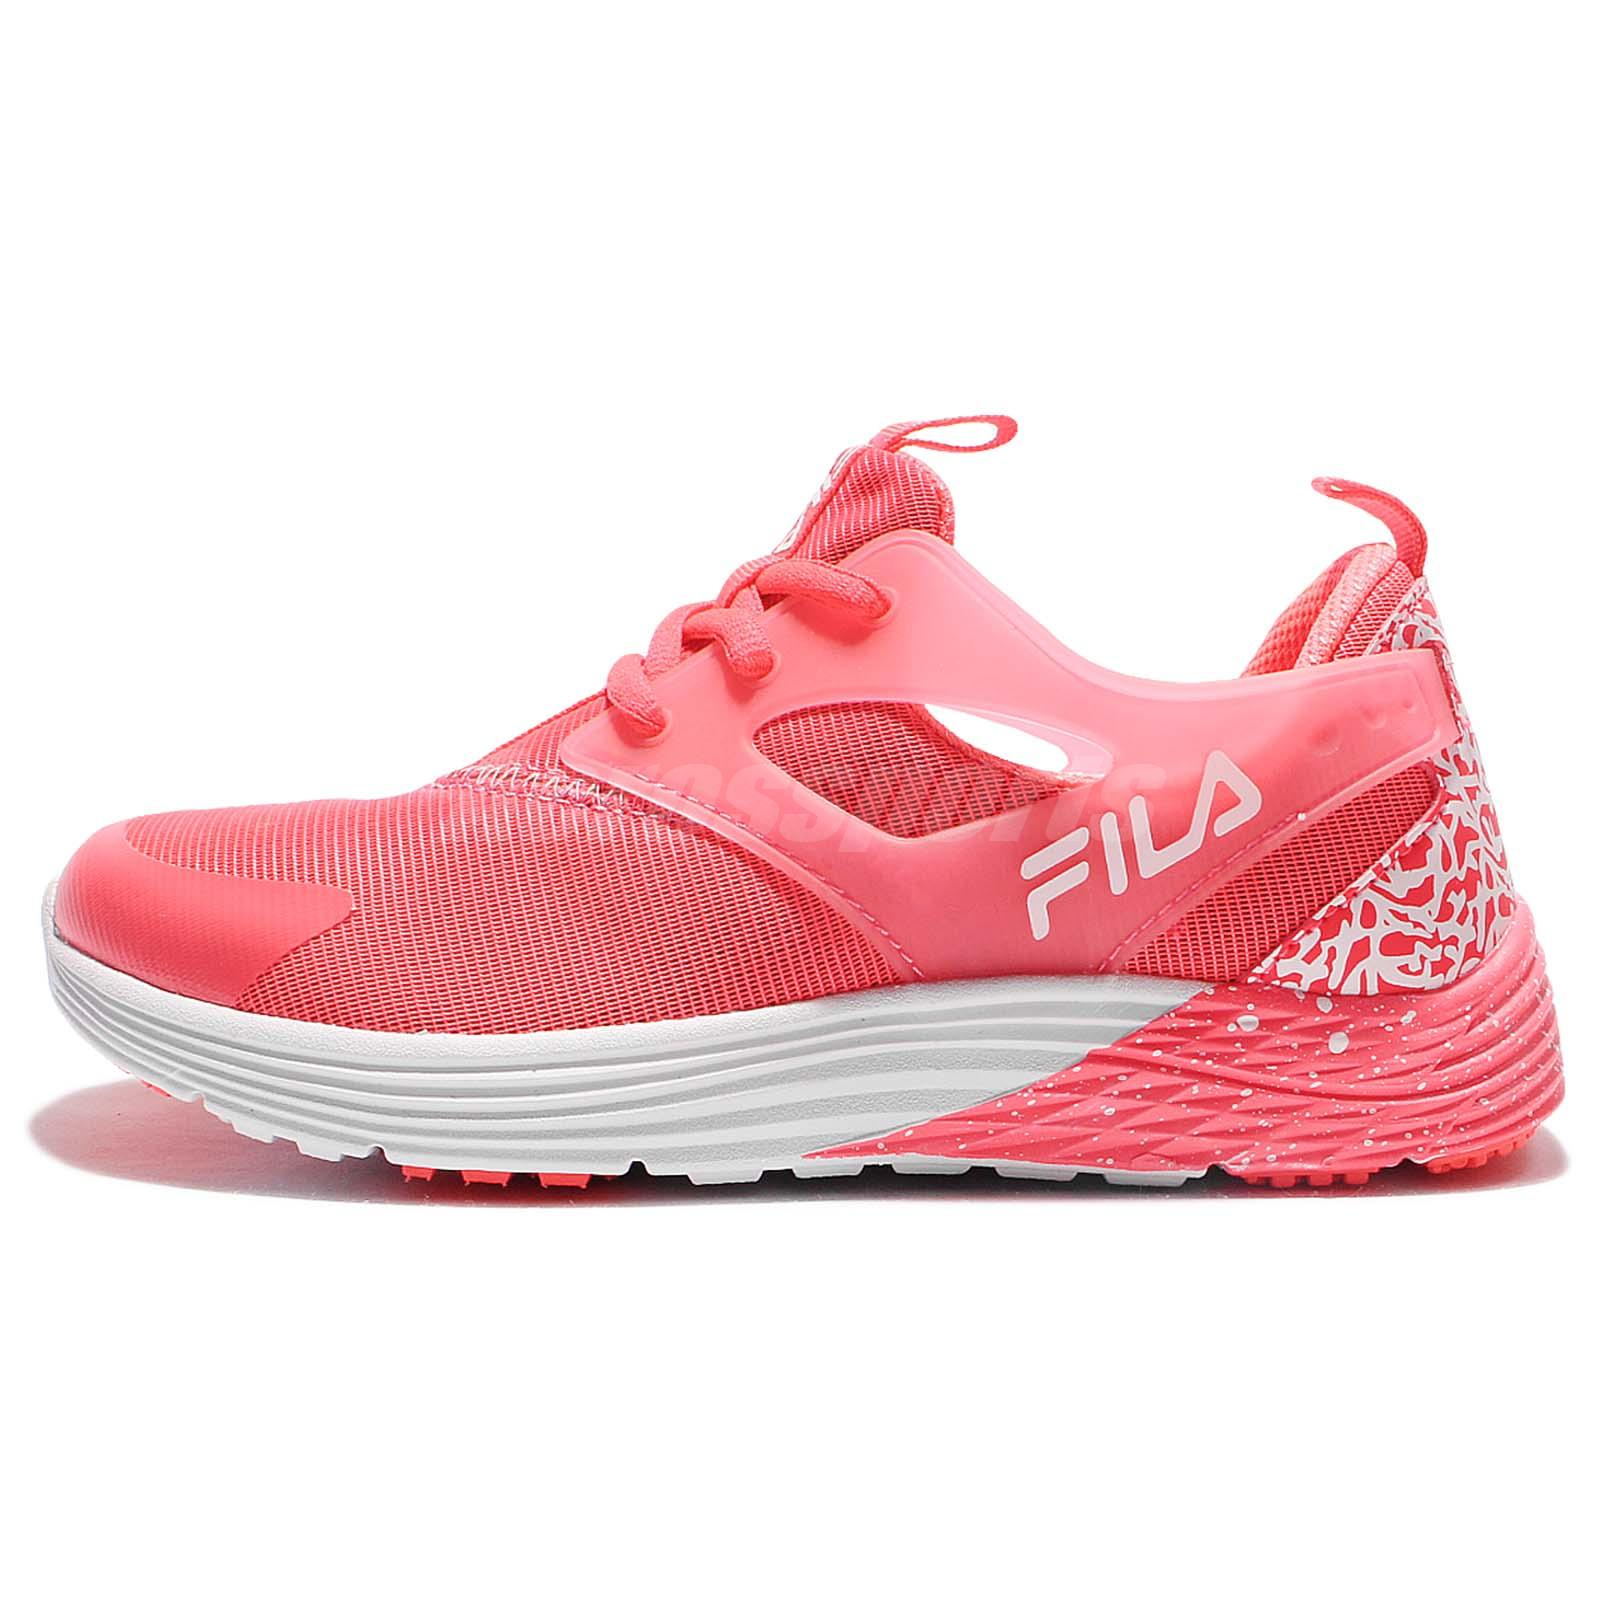 fila shoes price list in the philippines Sale c096b64ac4